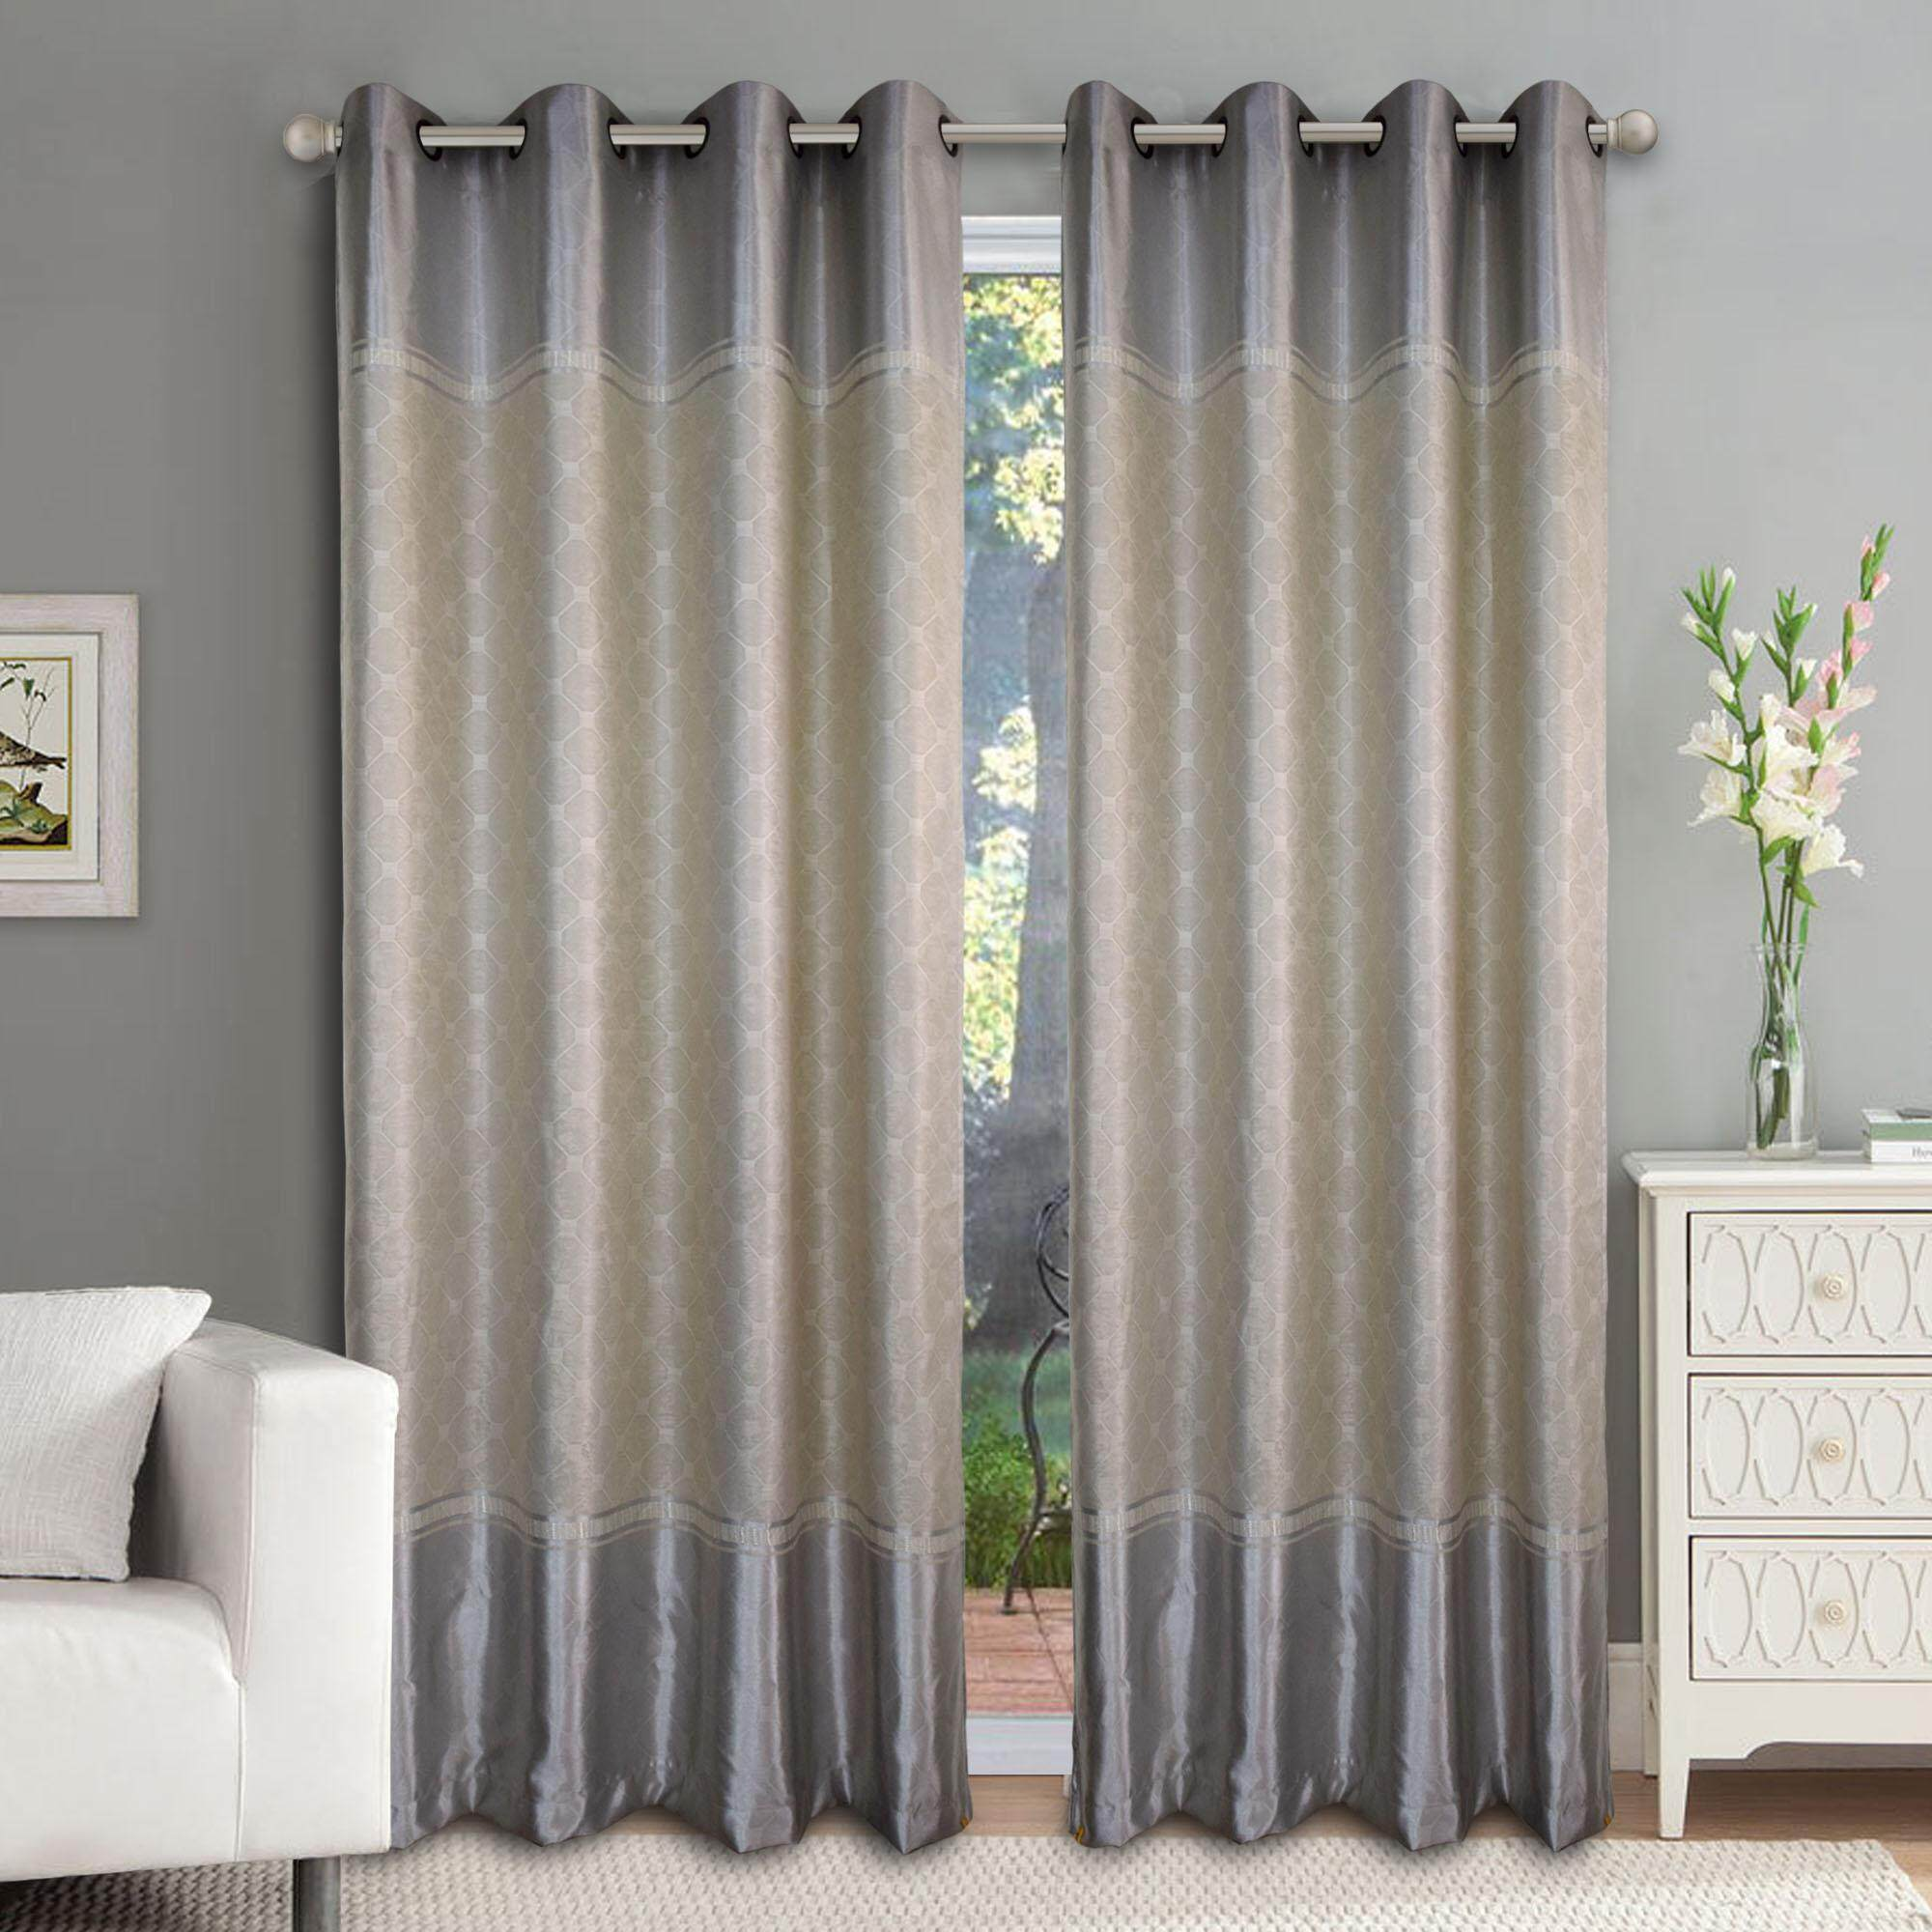 Sliding Door Curtain 1 Piece Essina Eyelet Curtain Premium Blackout 200cm X 260cm Moselle Fit Window Sliding Door 1 Panel Up To 180cm Width